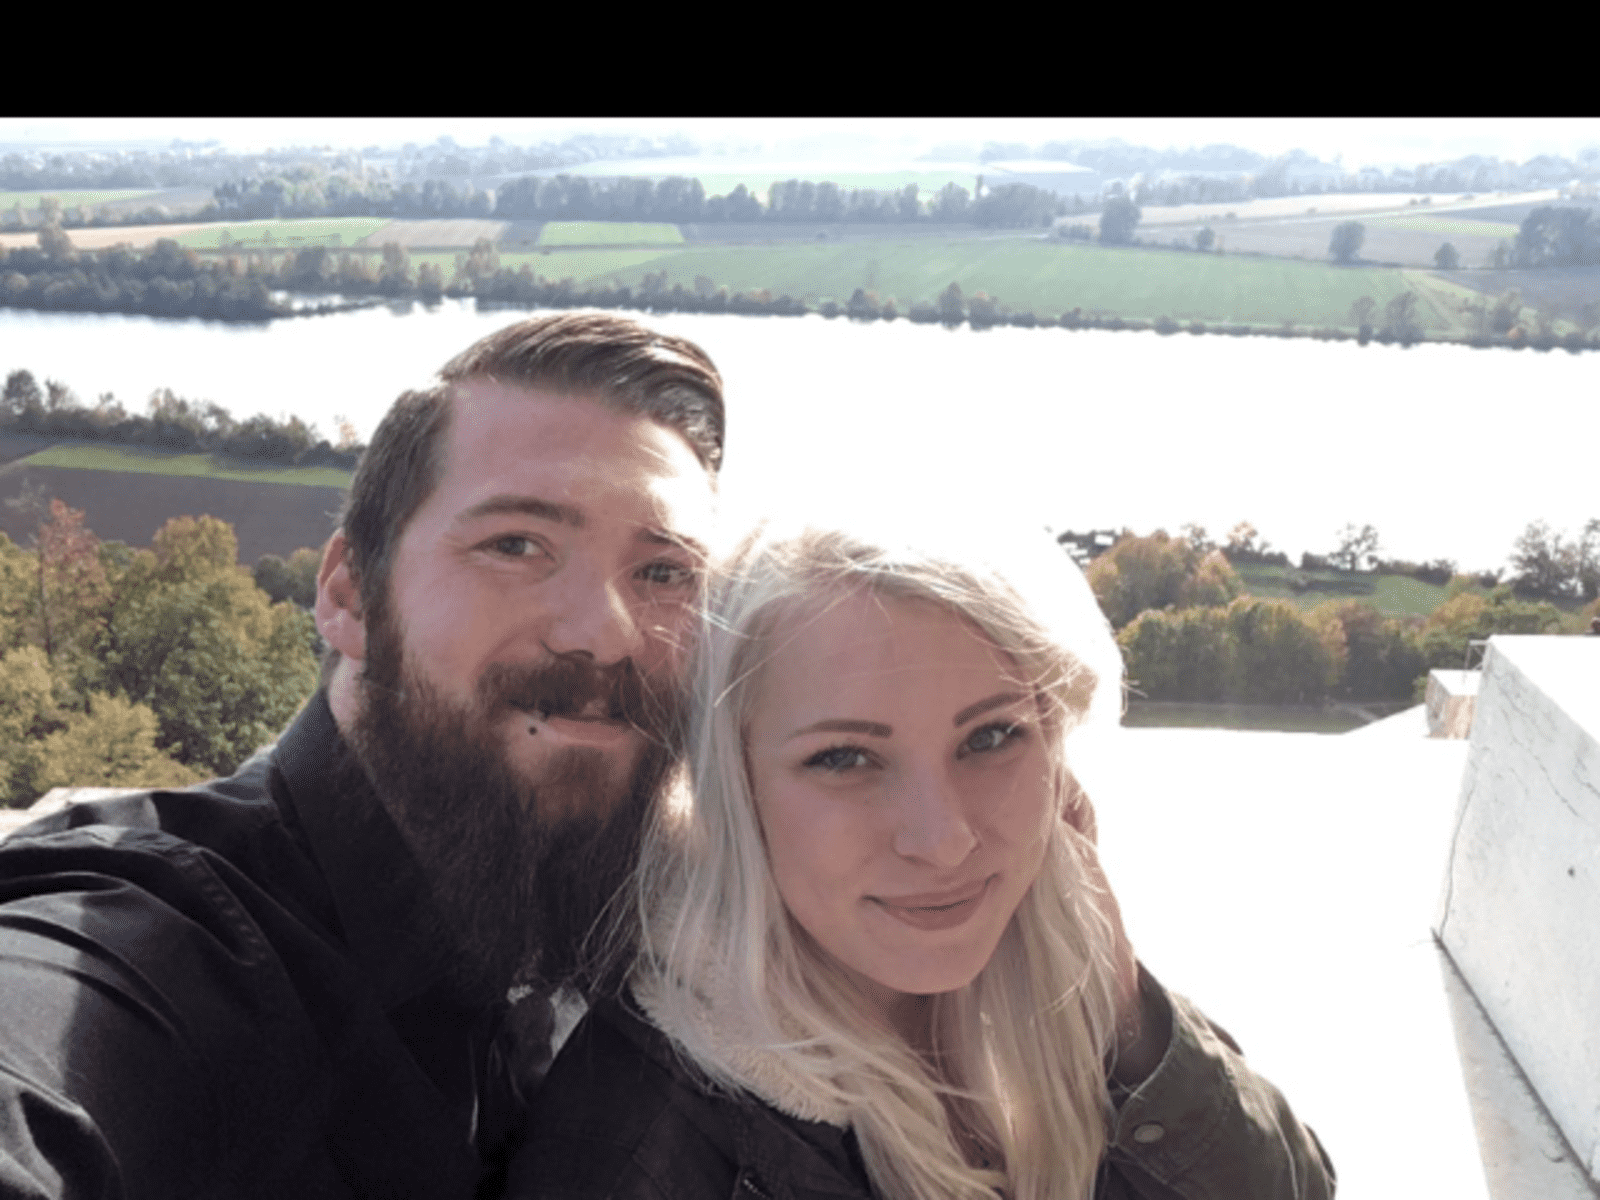 Meiline & Julian from Amberg, Germany